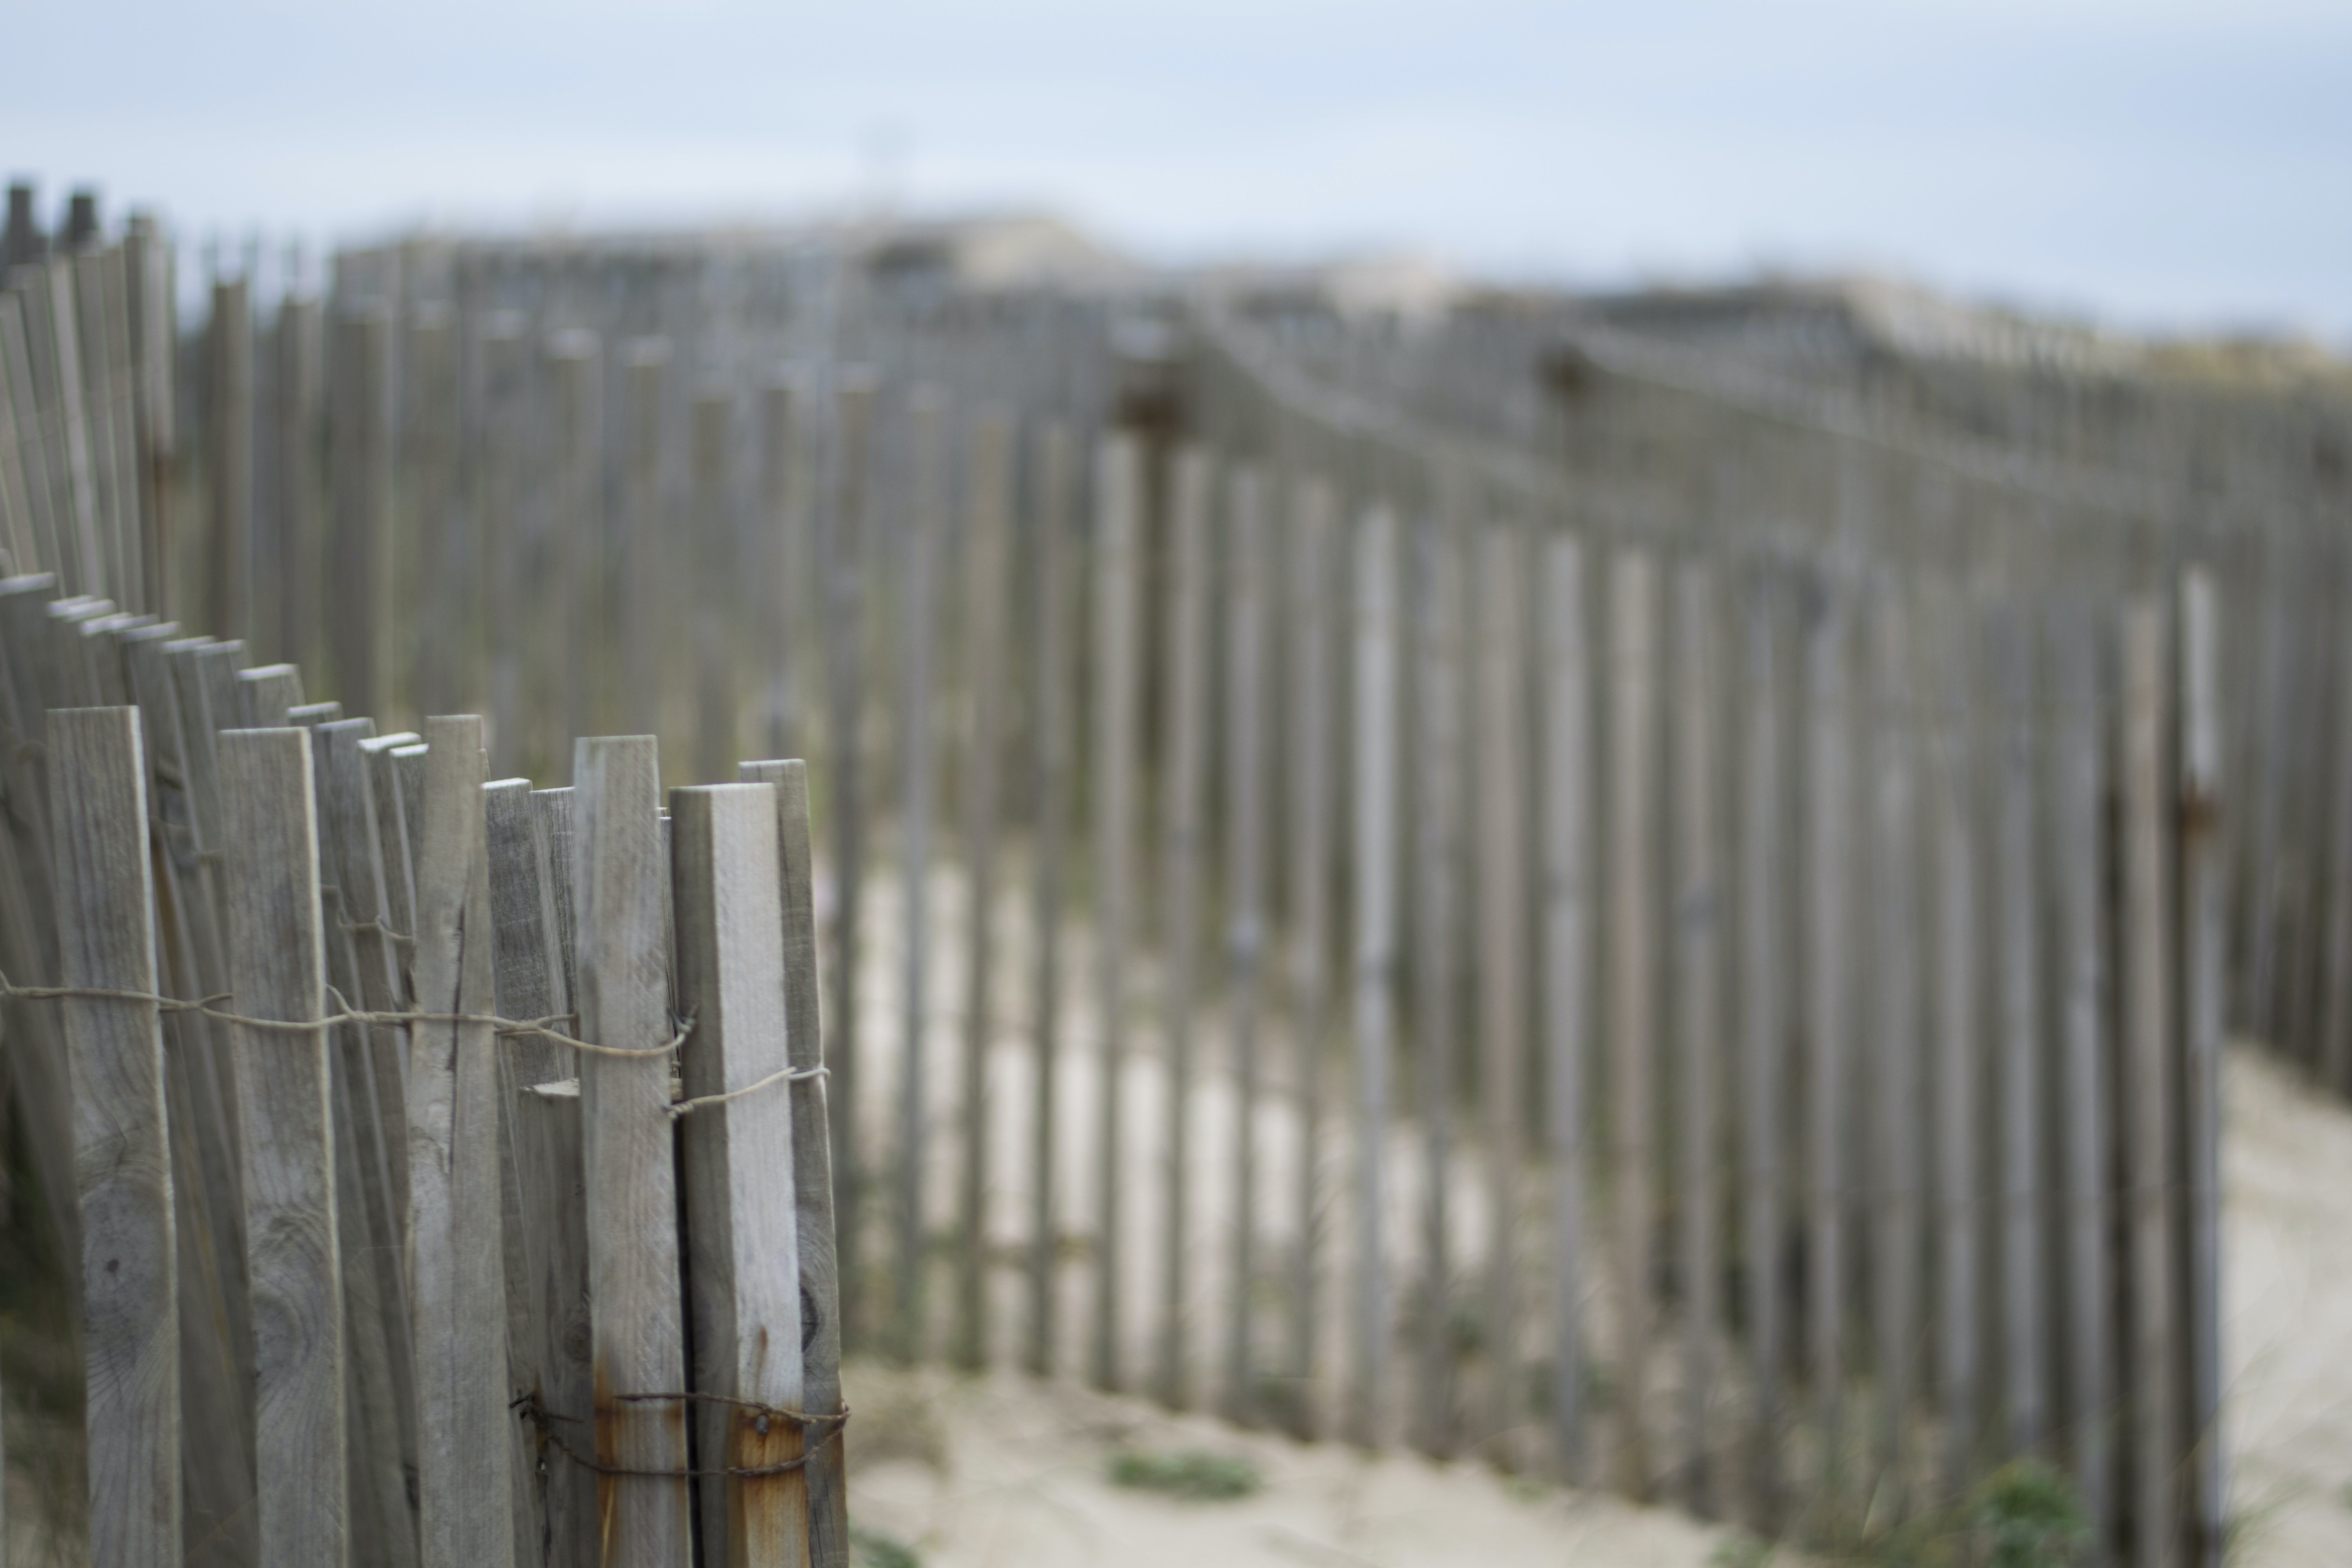 Shallow Focus Photography of Brown Wooden Fence